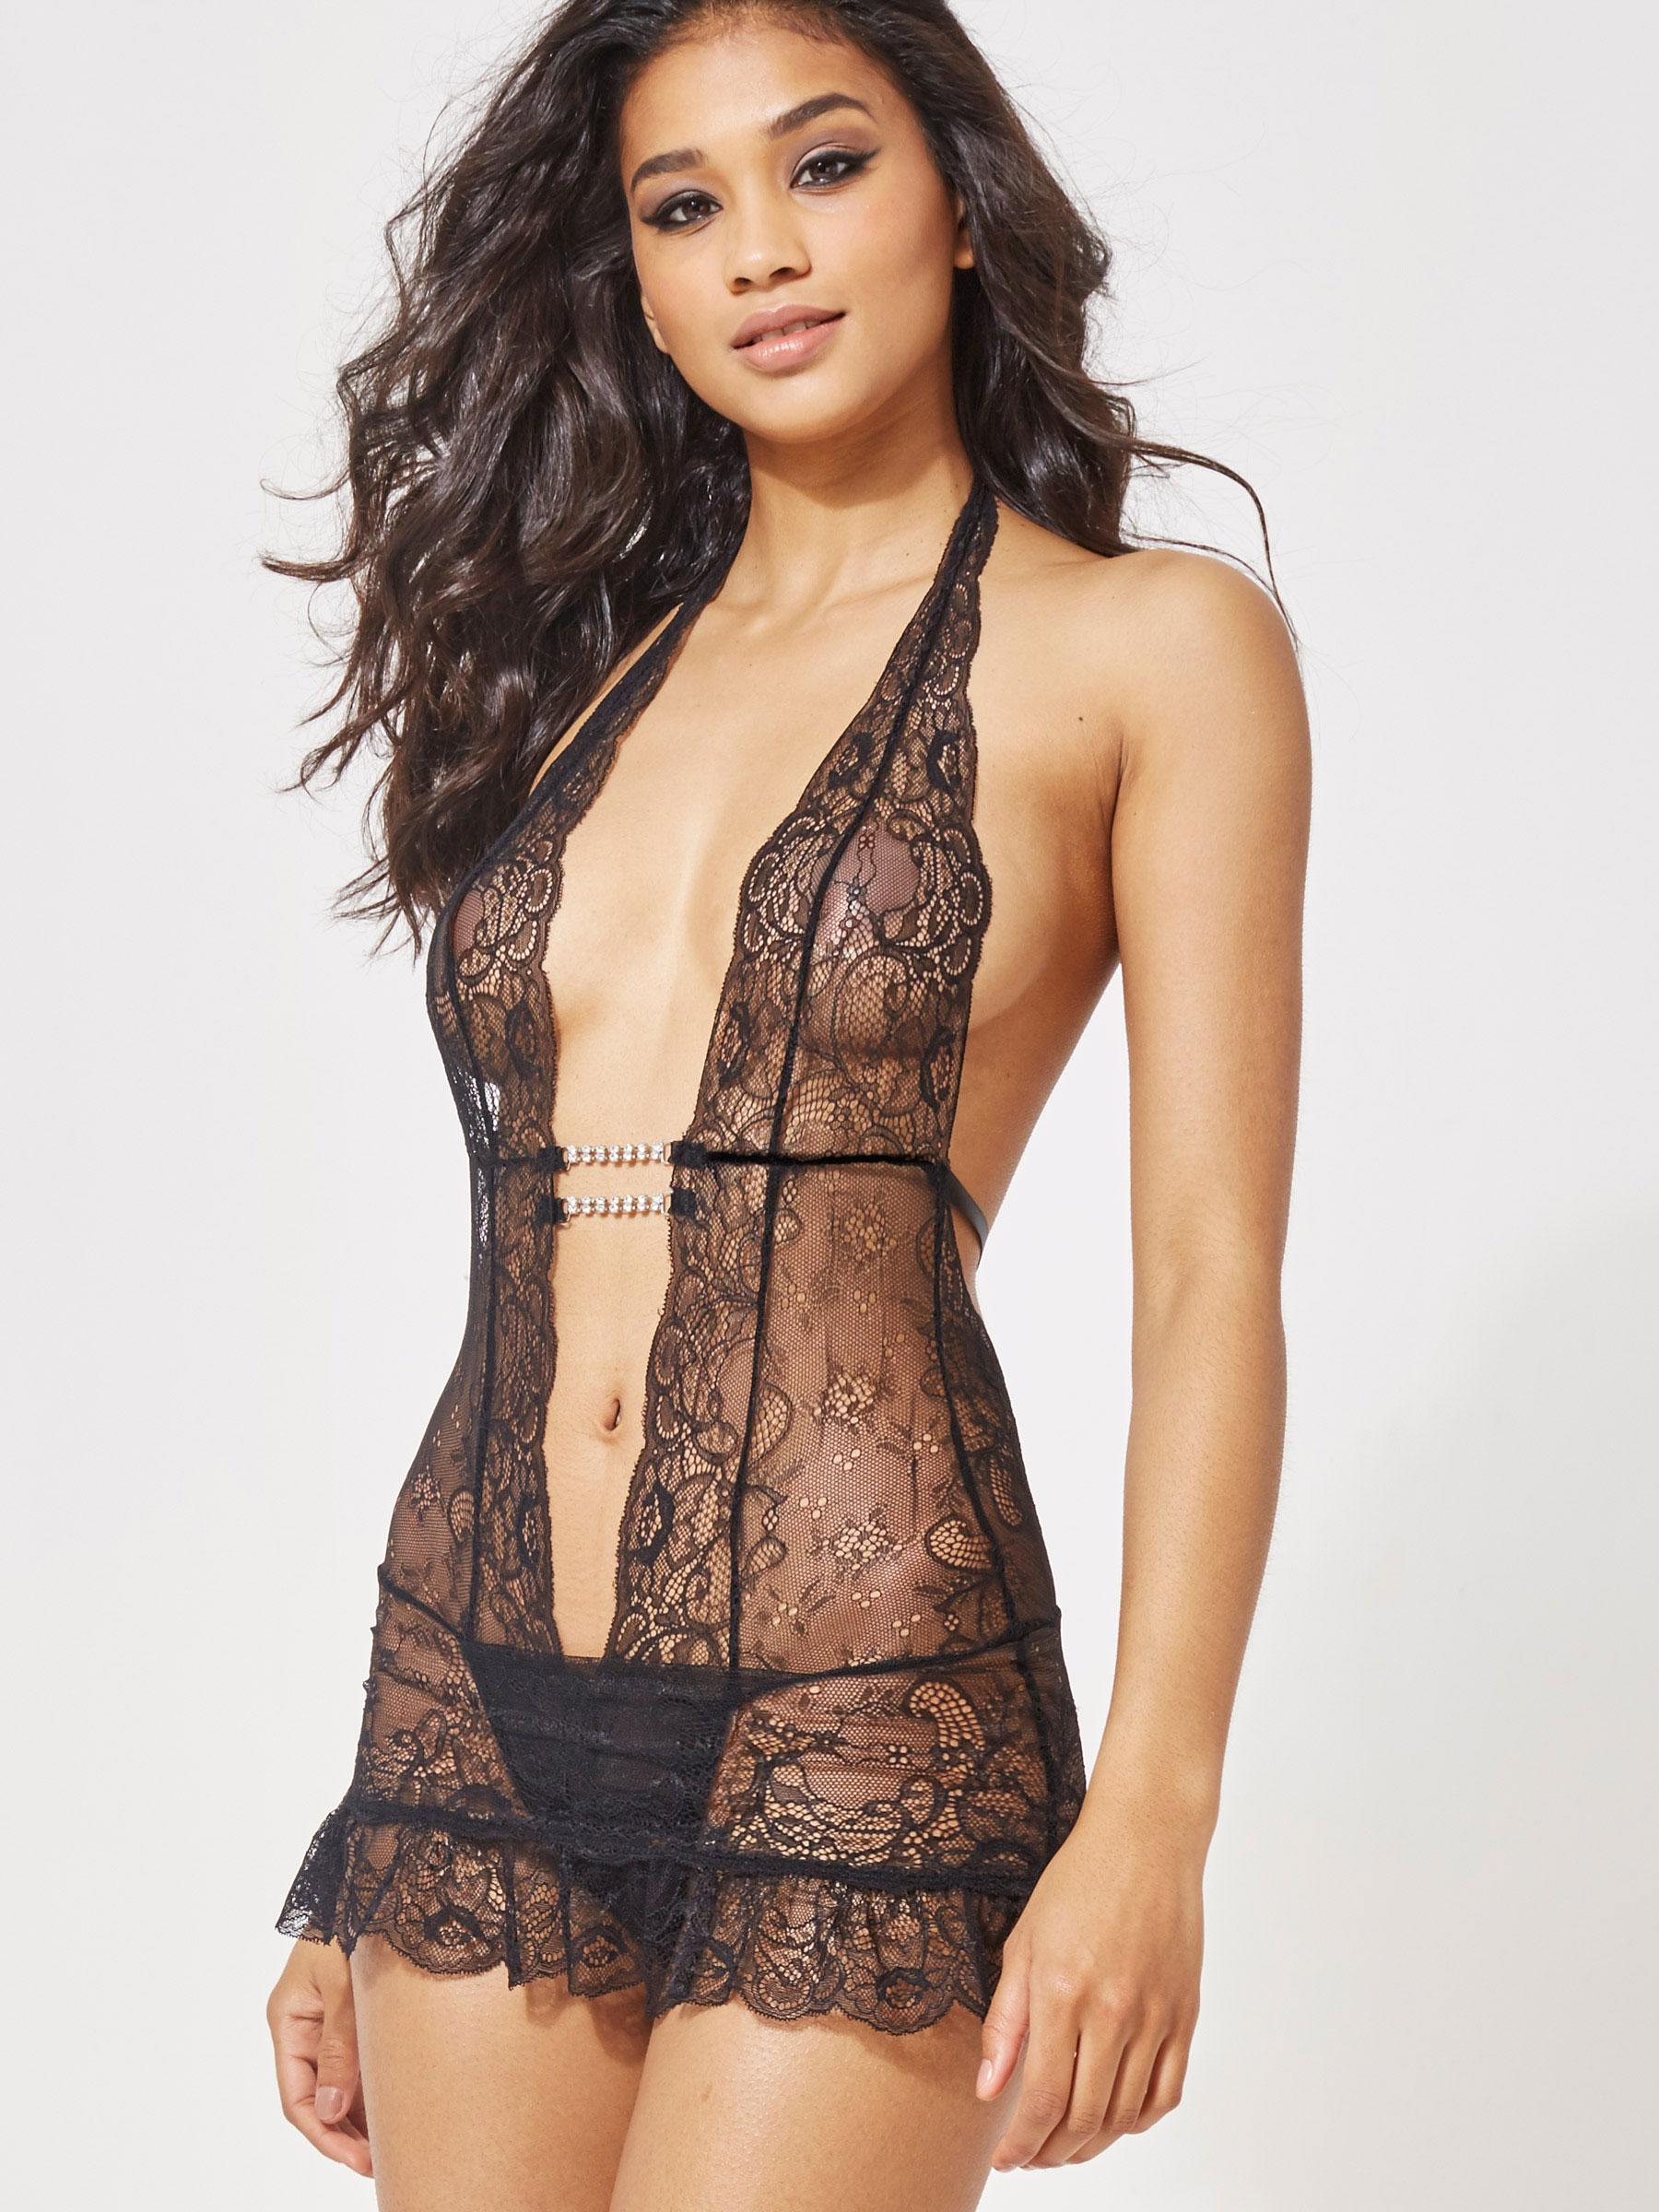 Ann Summers Womens Marydoll New Black Lace Body Sexy Lingerie Nightwear  Bodysuit 4348298af